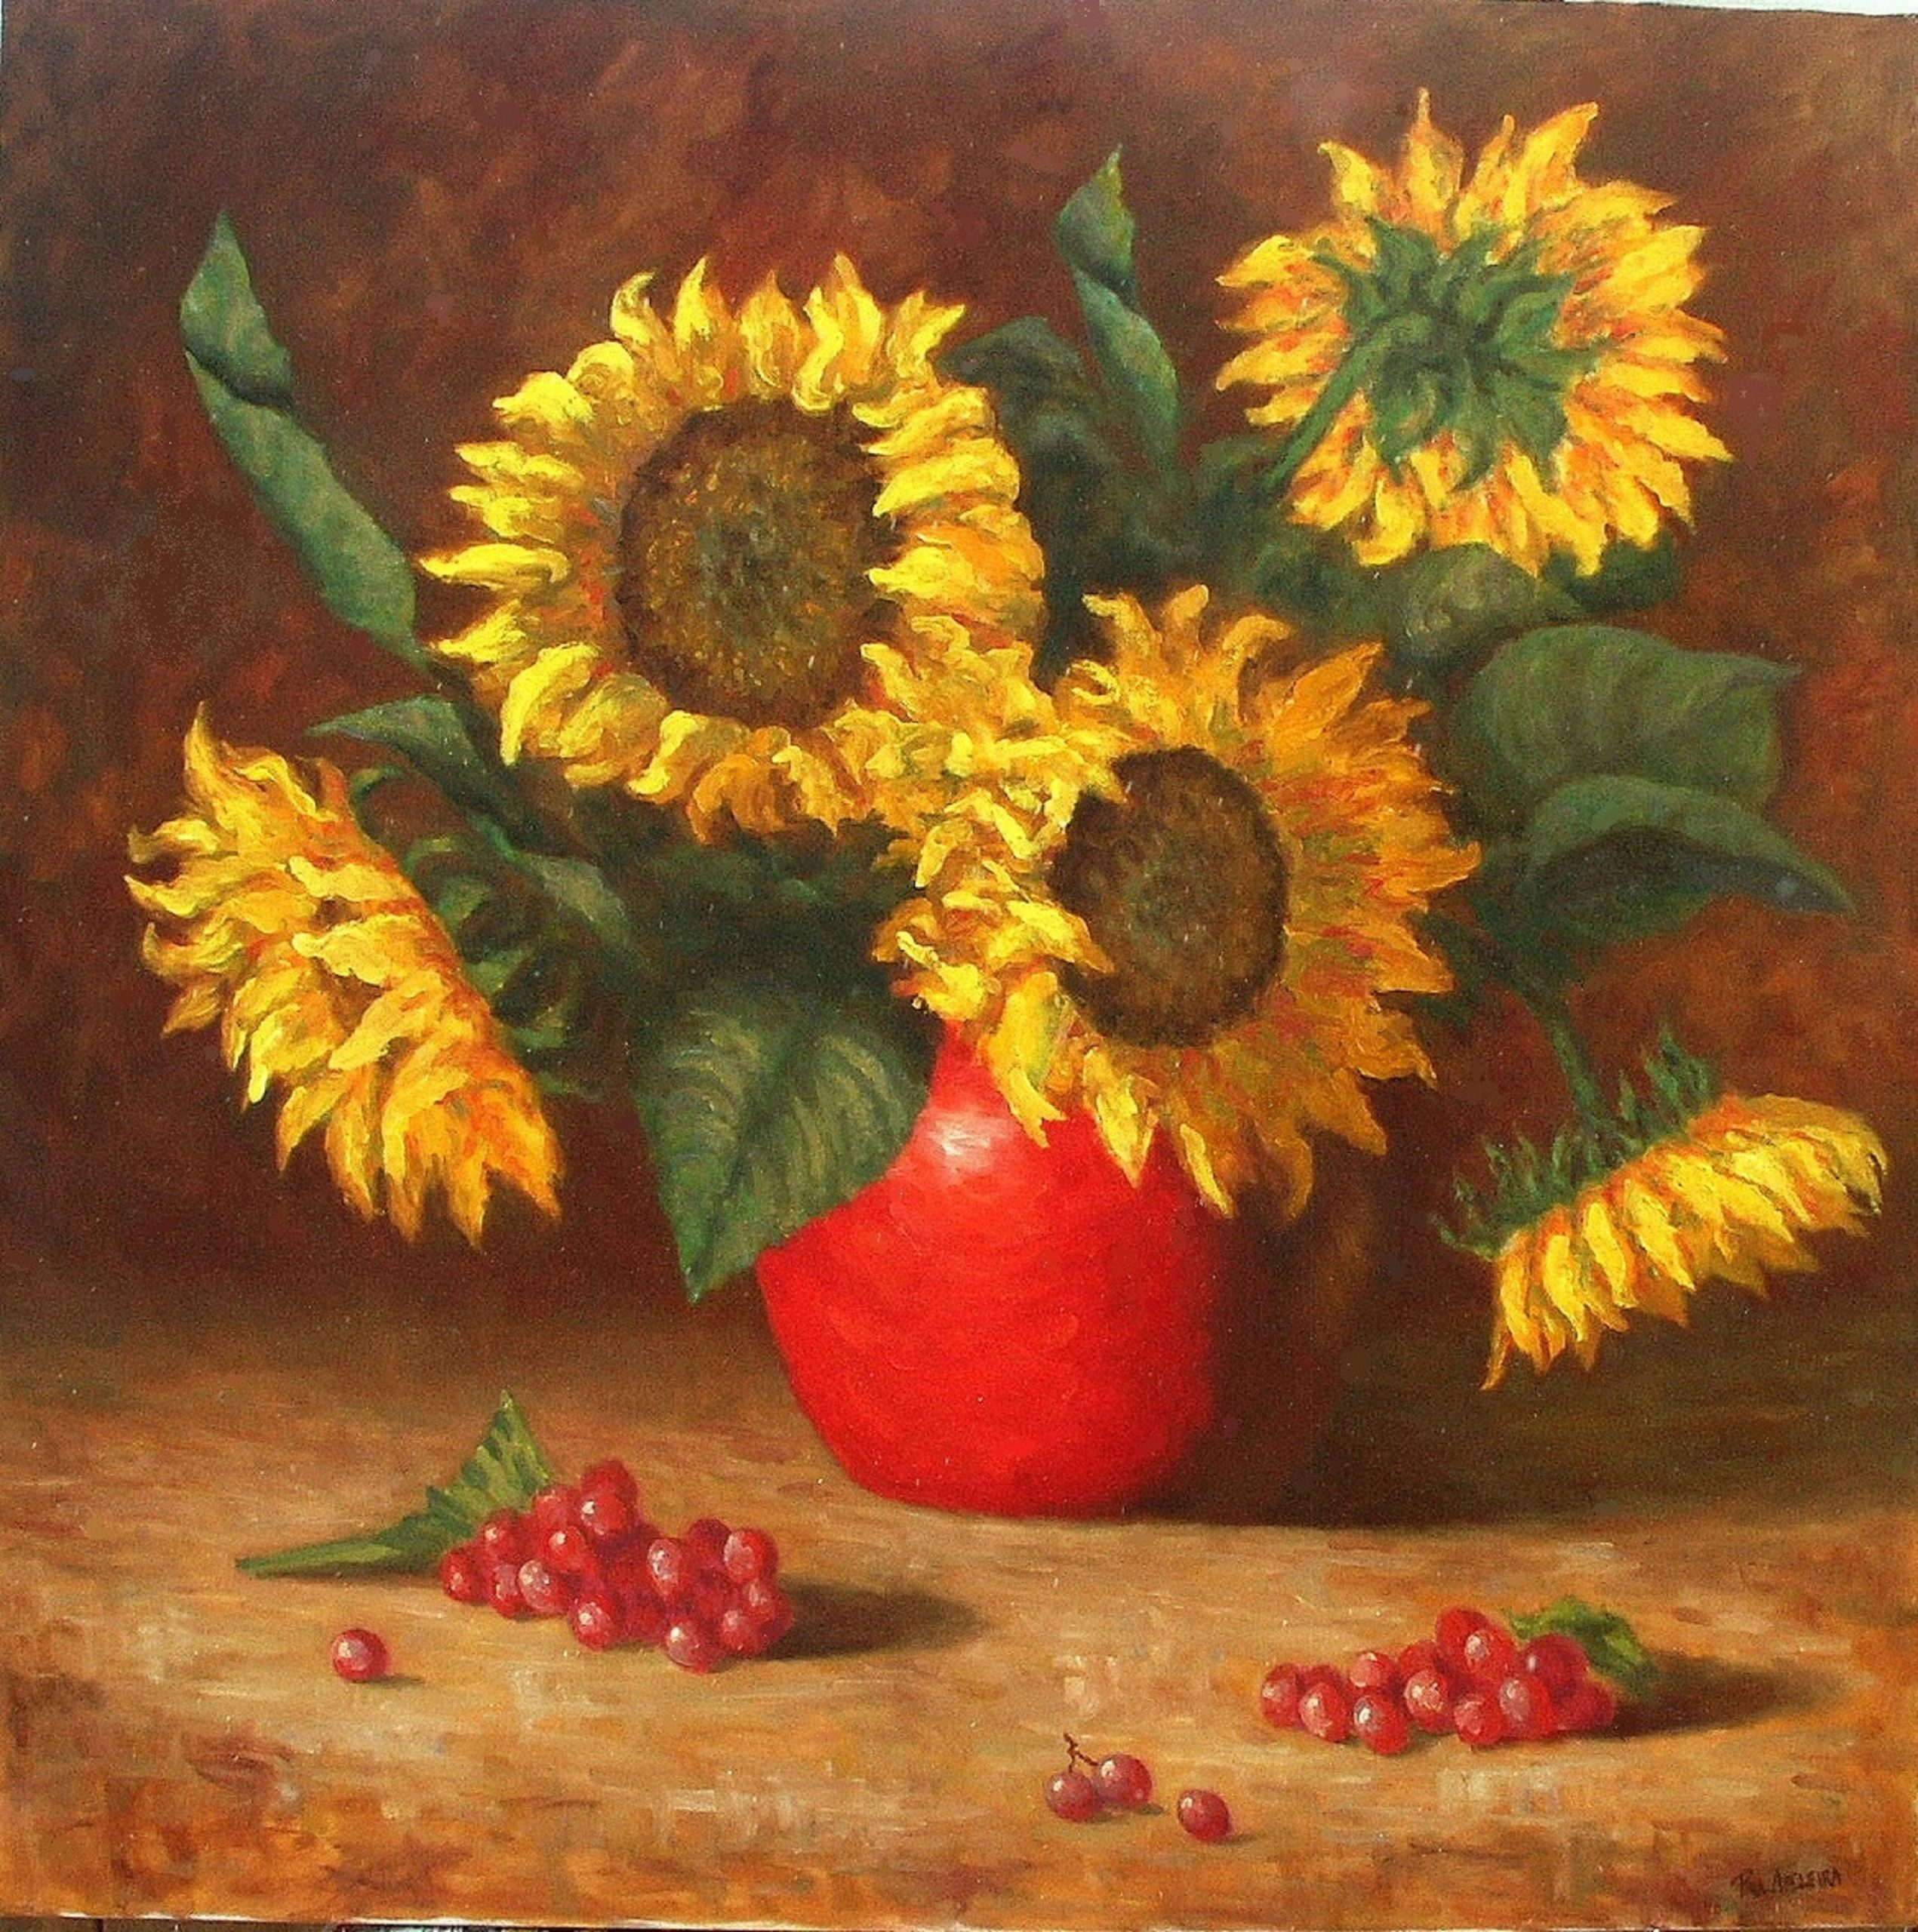 Abeleira, Paul - painting of 5 sunflowers in a red vase